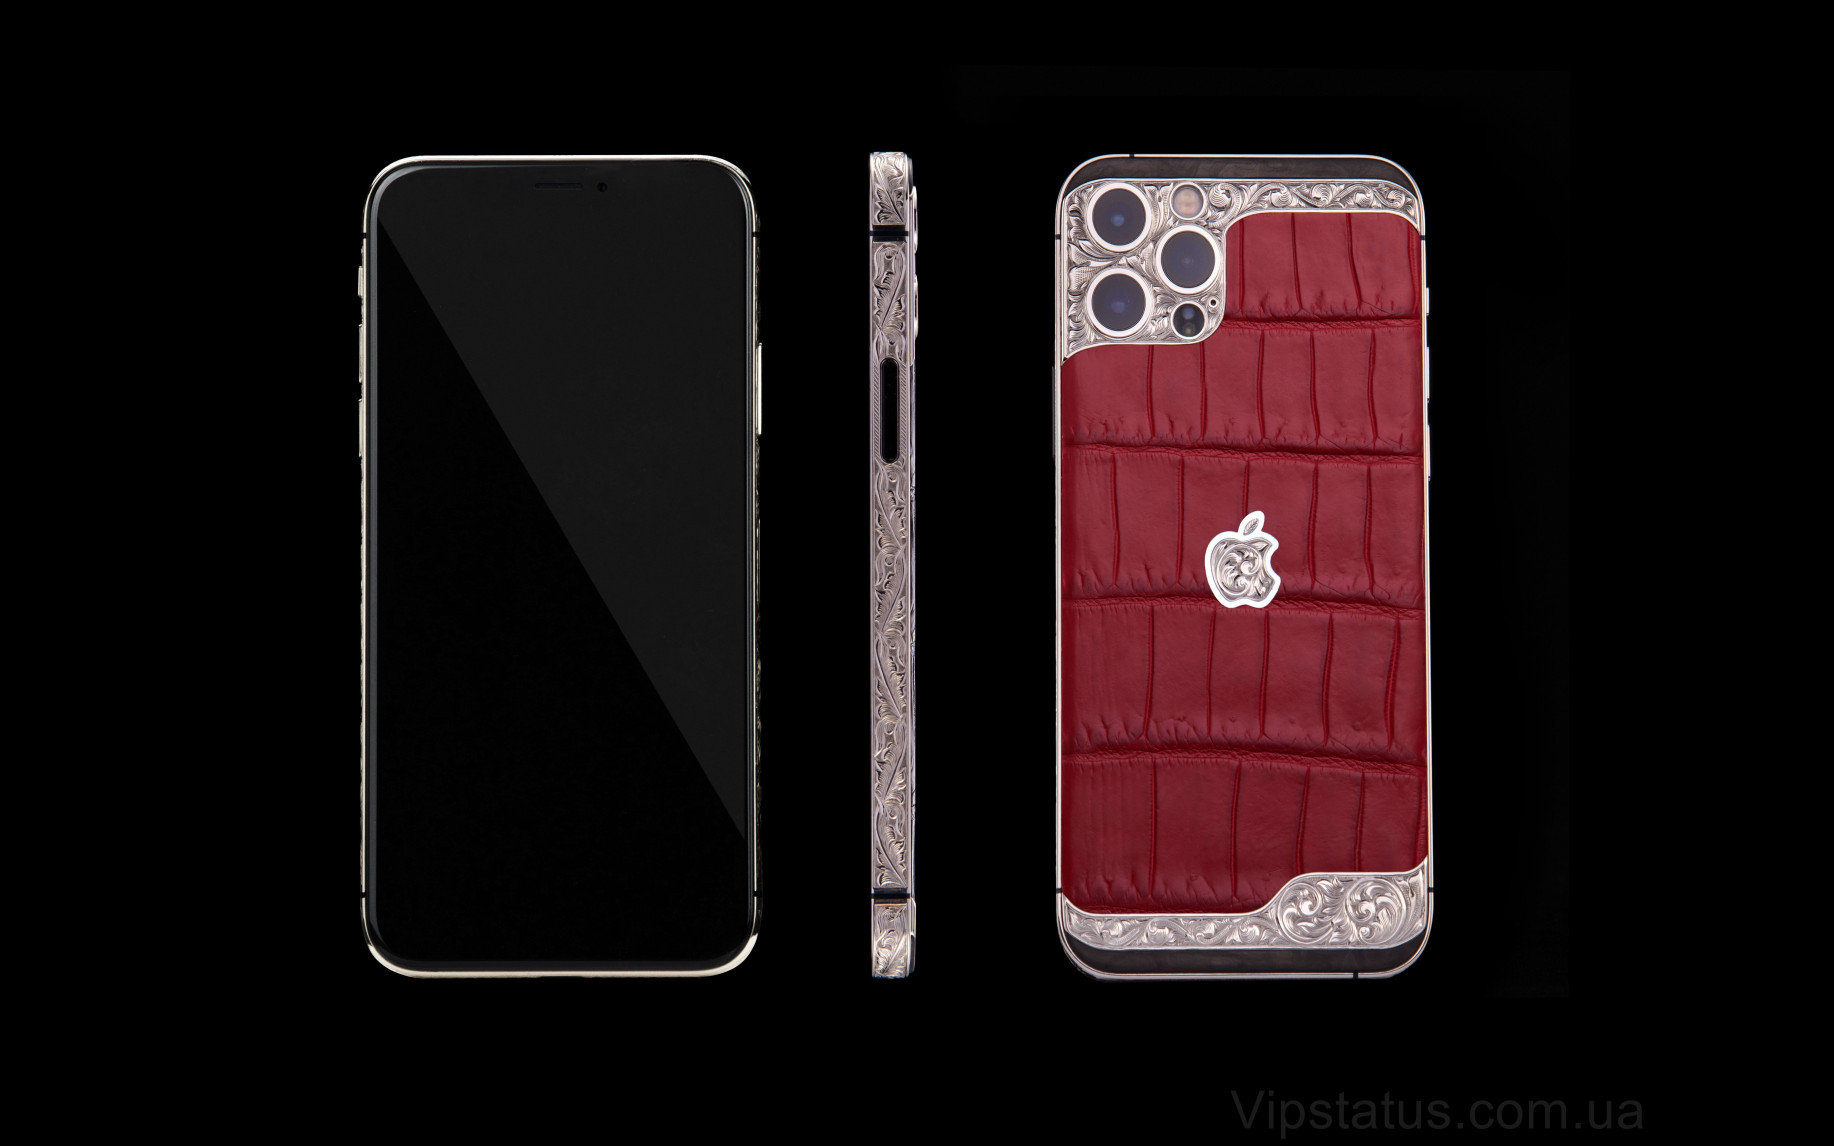 Elite Red Queen Edition IPHONE 12 PRO MAX 512 GB Red Queen Edition IPHONE 12 PRO MAX 512 GB image 8